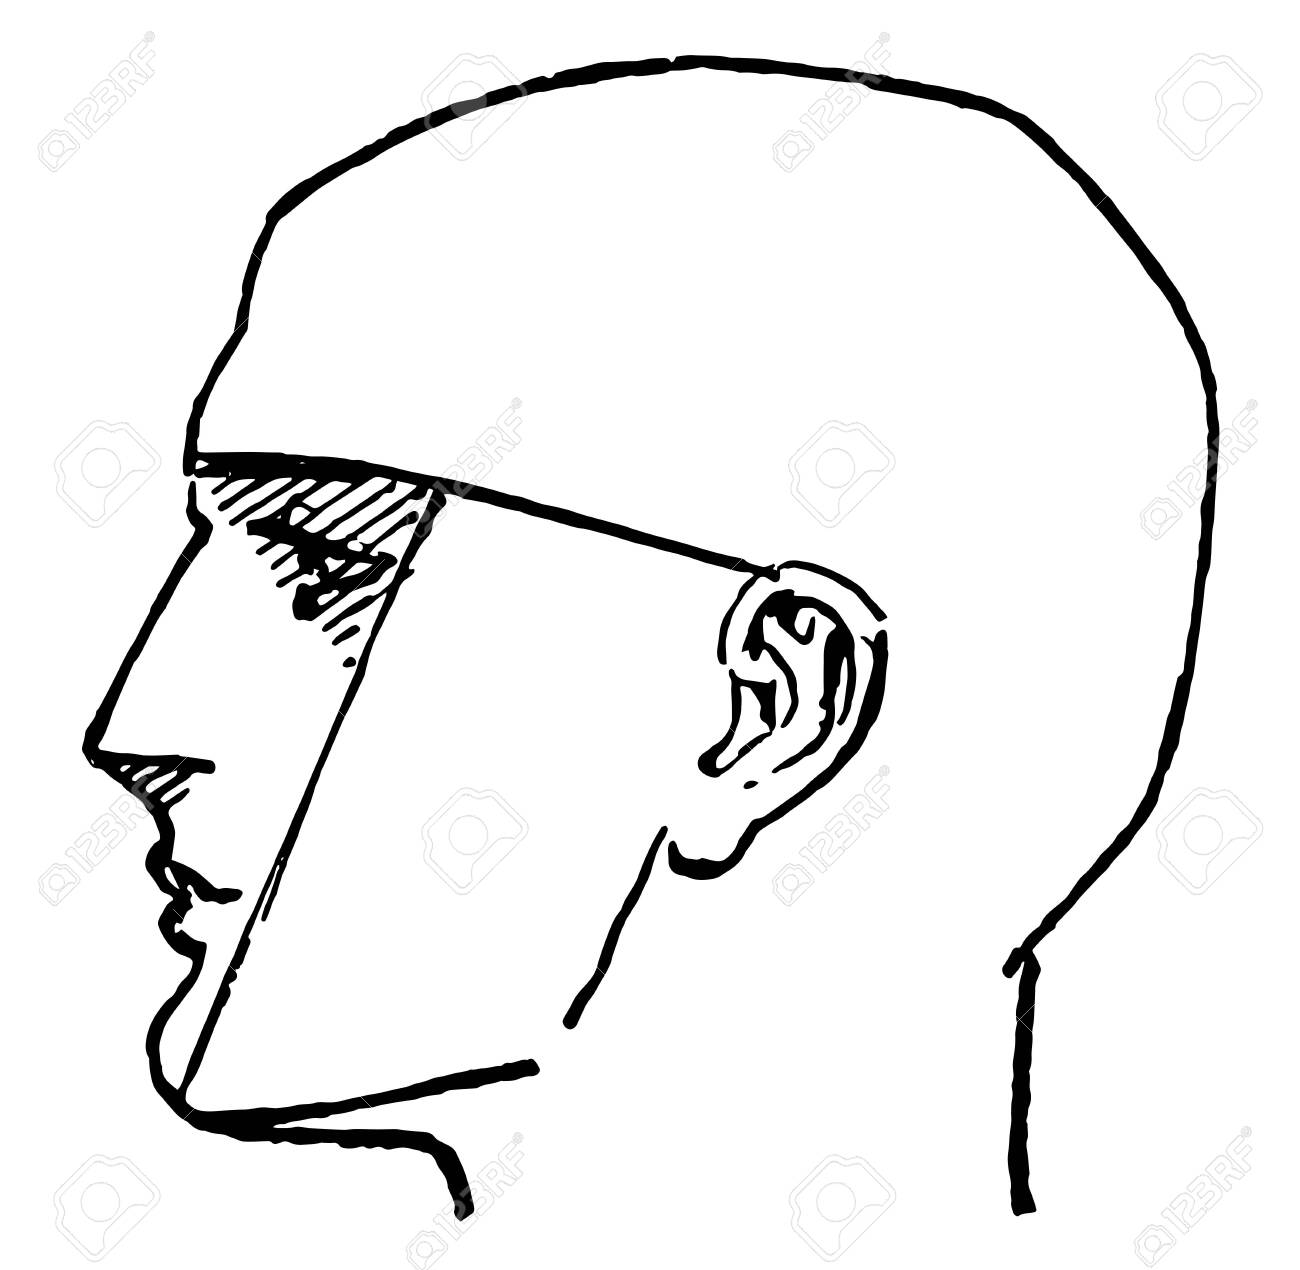 Side Profile Of A Male Face In This Picture Vintage Line Drawing Royalty Free Cliparts Vectors And Stock Illustration Image 133111006